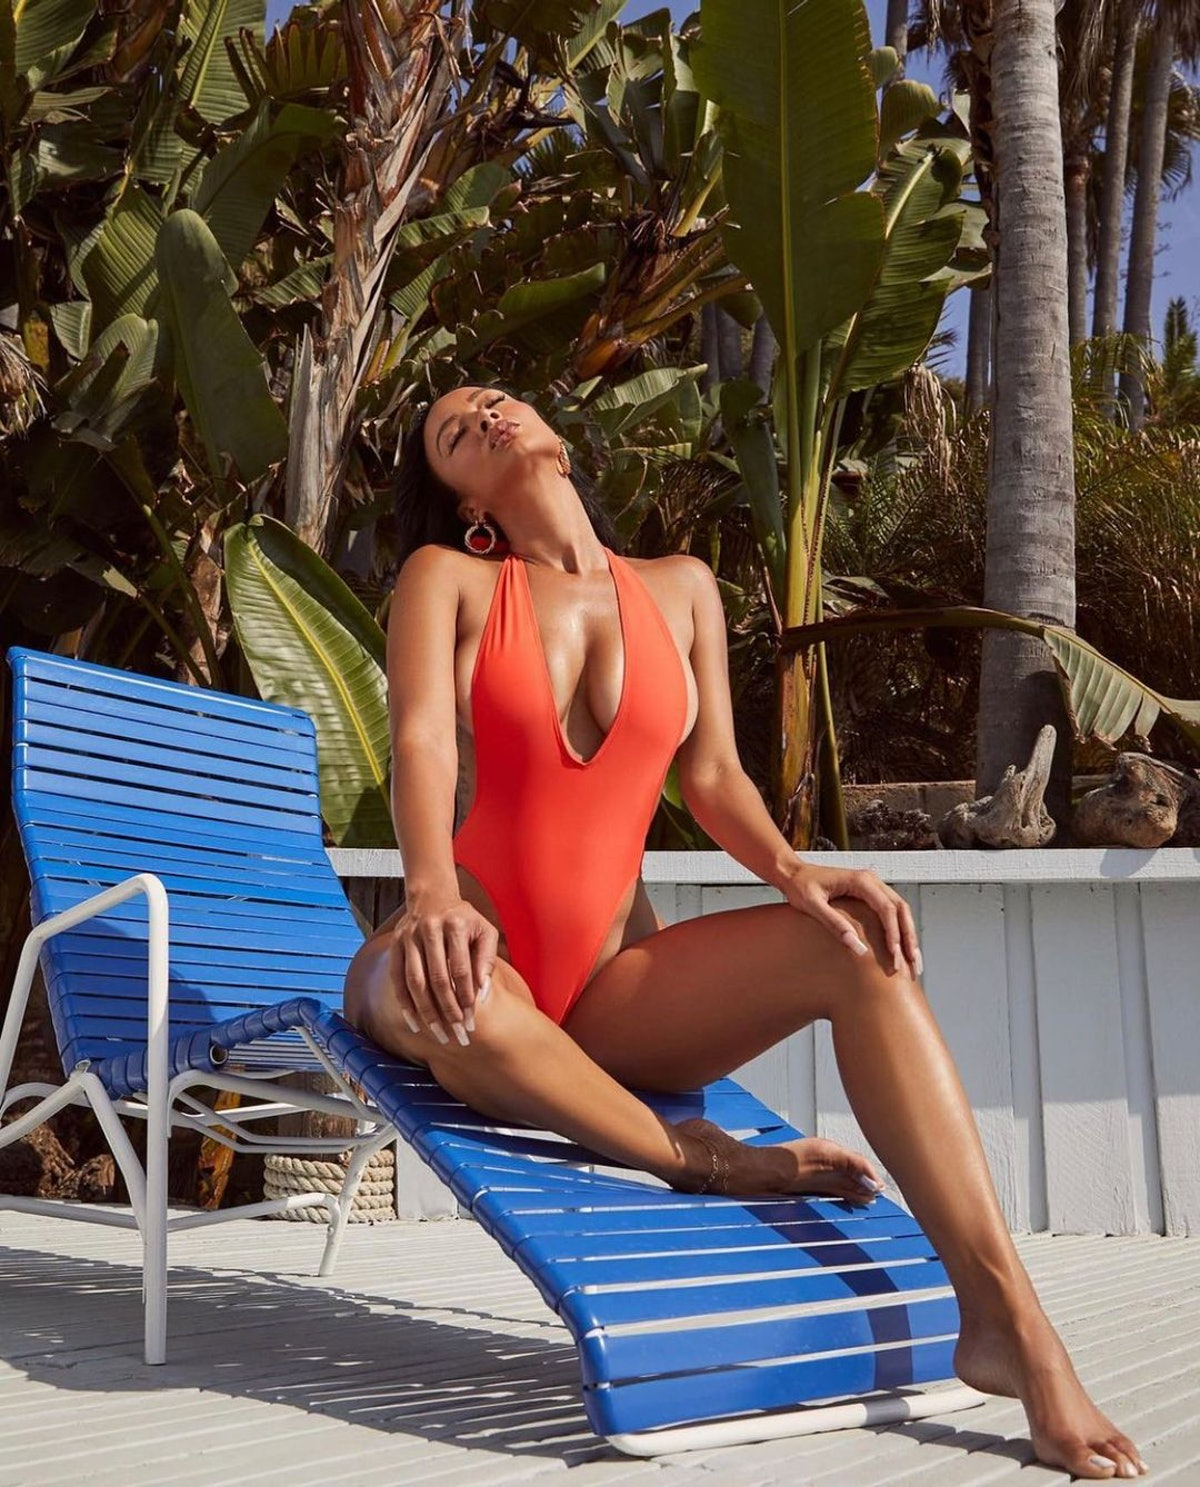 This '80s and '90s-inspired high-cut red one-piece from Mint Swim gives off major 'Baywatch' Pamela ...